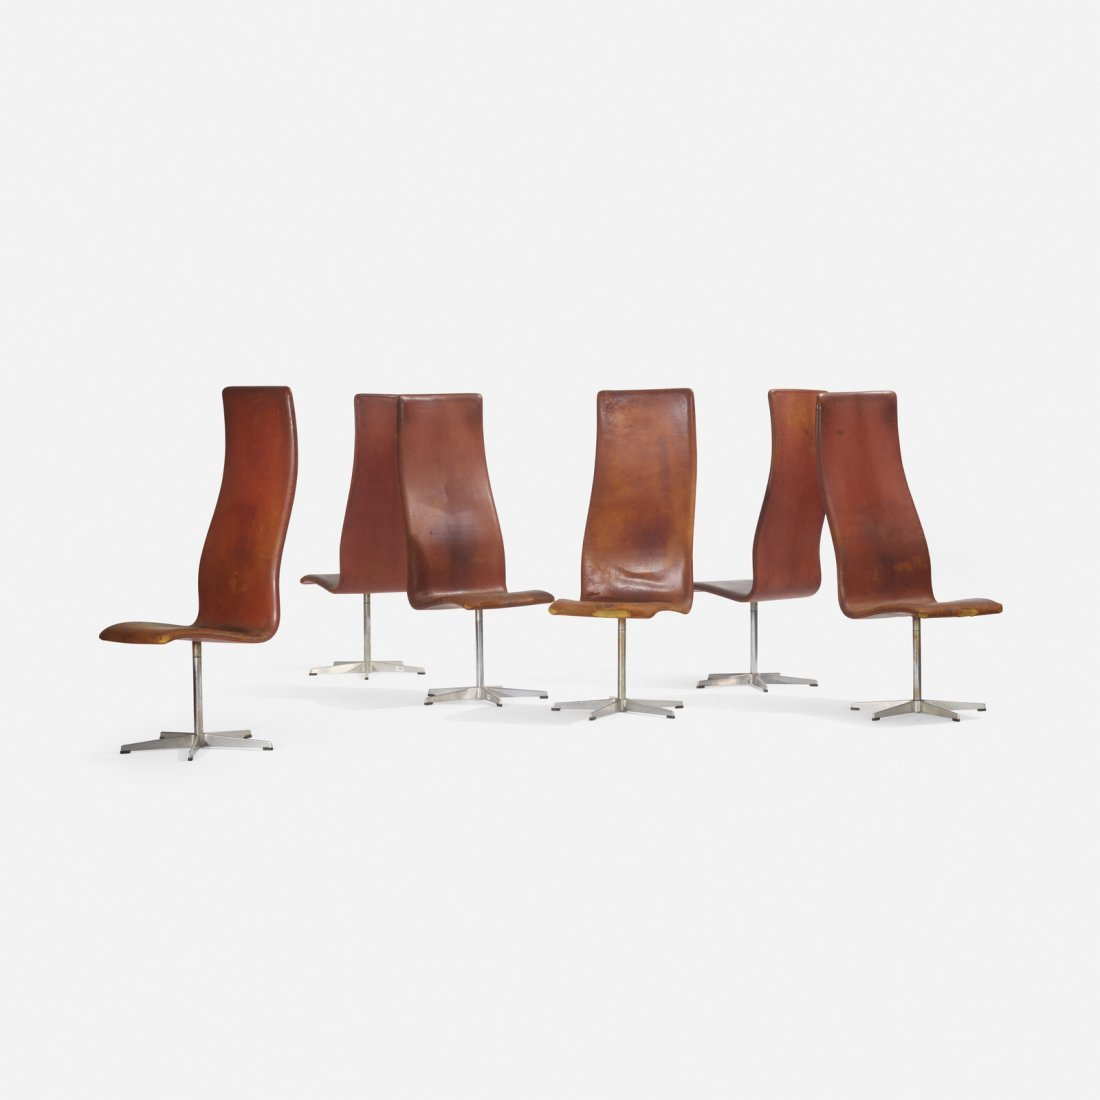 Arne Jacobsen, Oxford chairs model 7403, set of six - 2